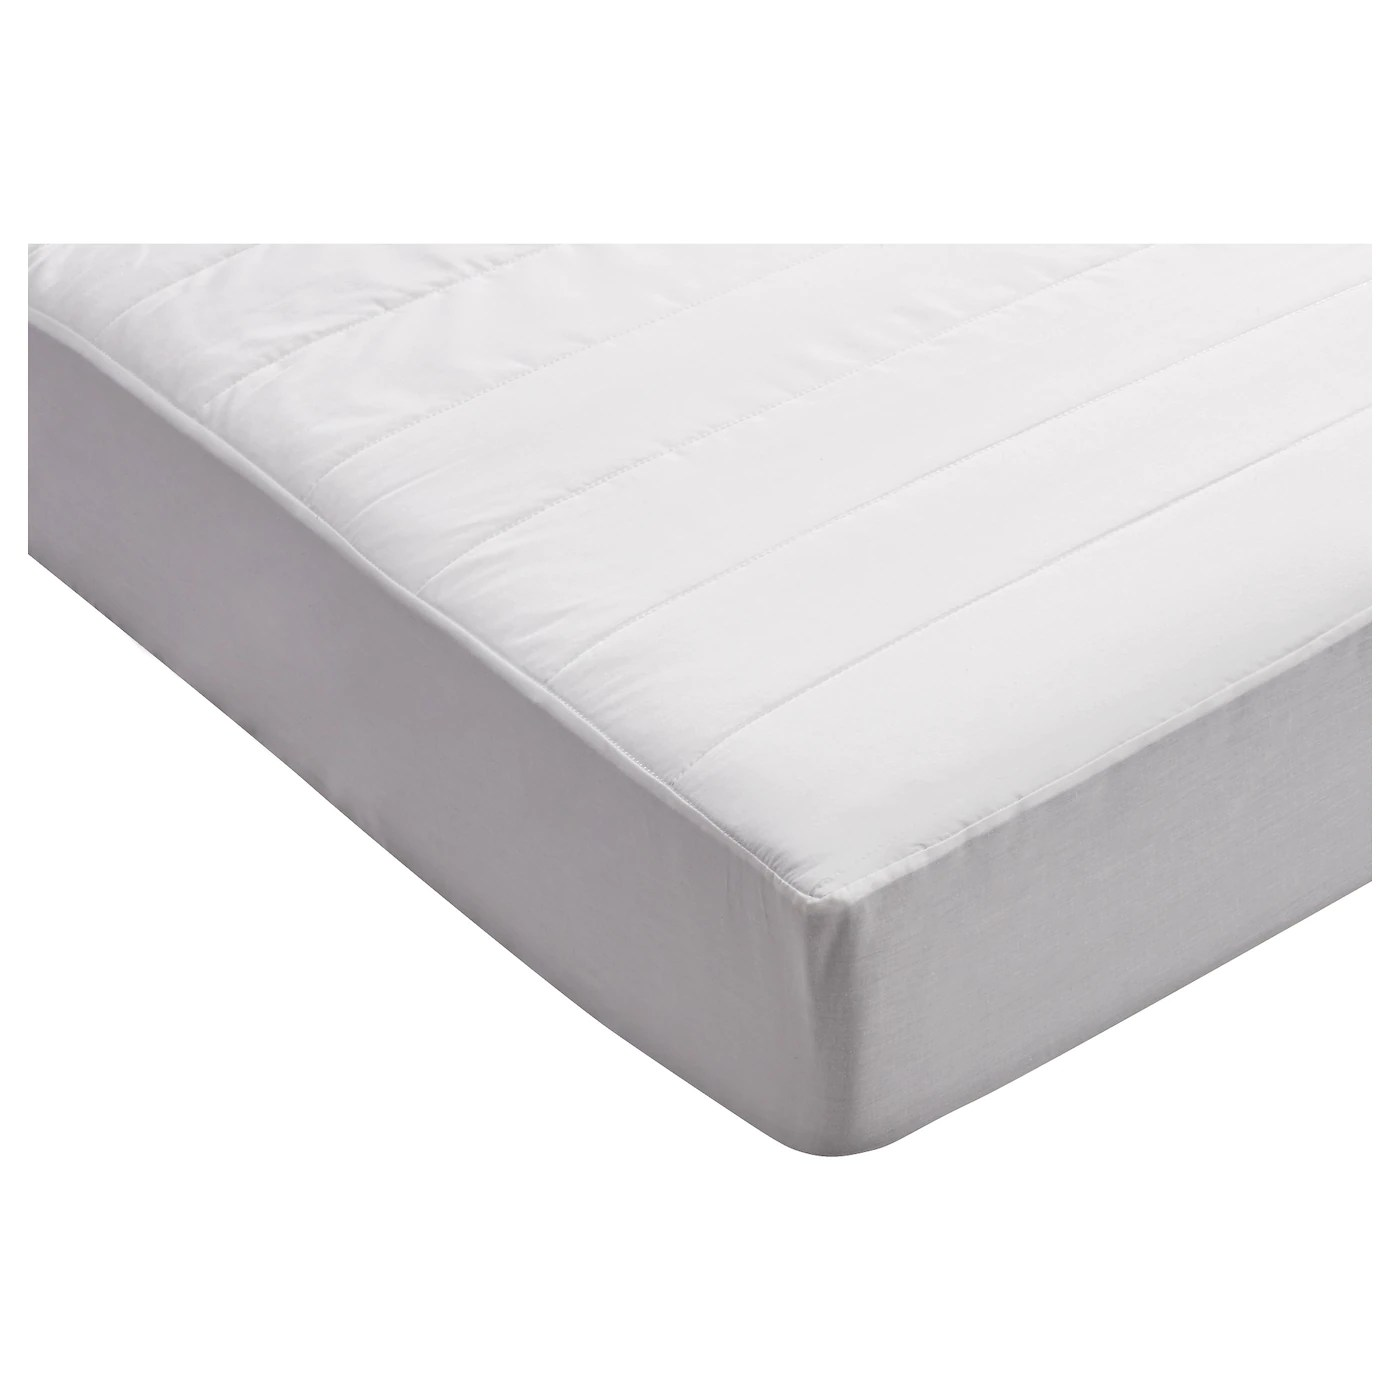 Super King Size Waterproof Mattress Protector Mattress Topper Mattress Protector Ikea